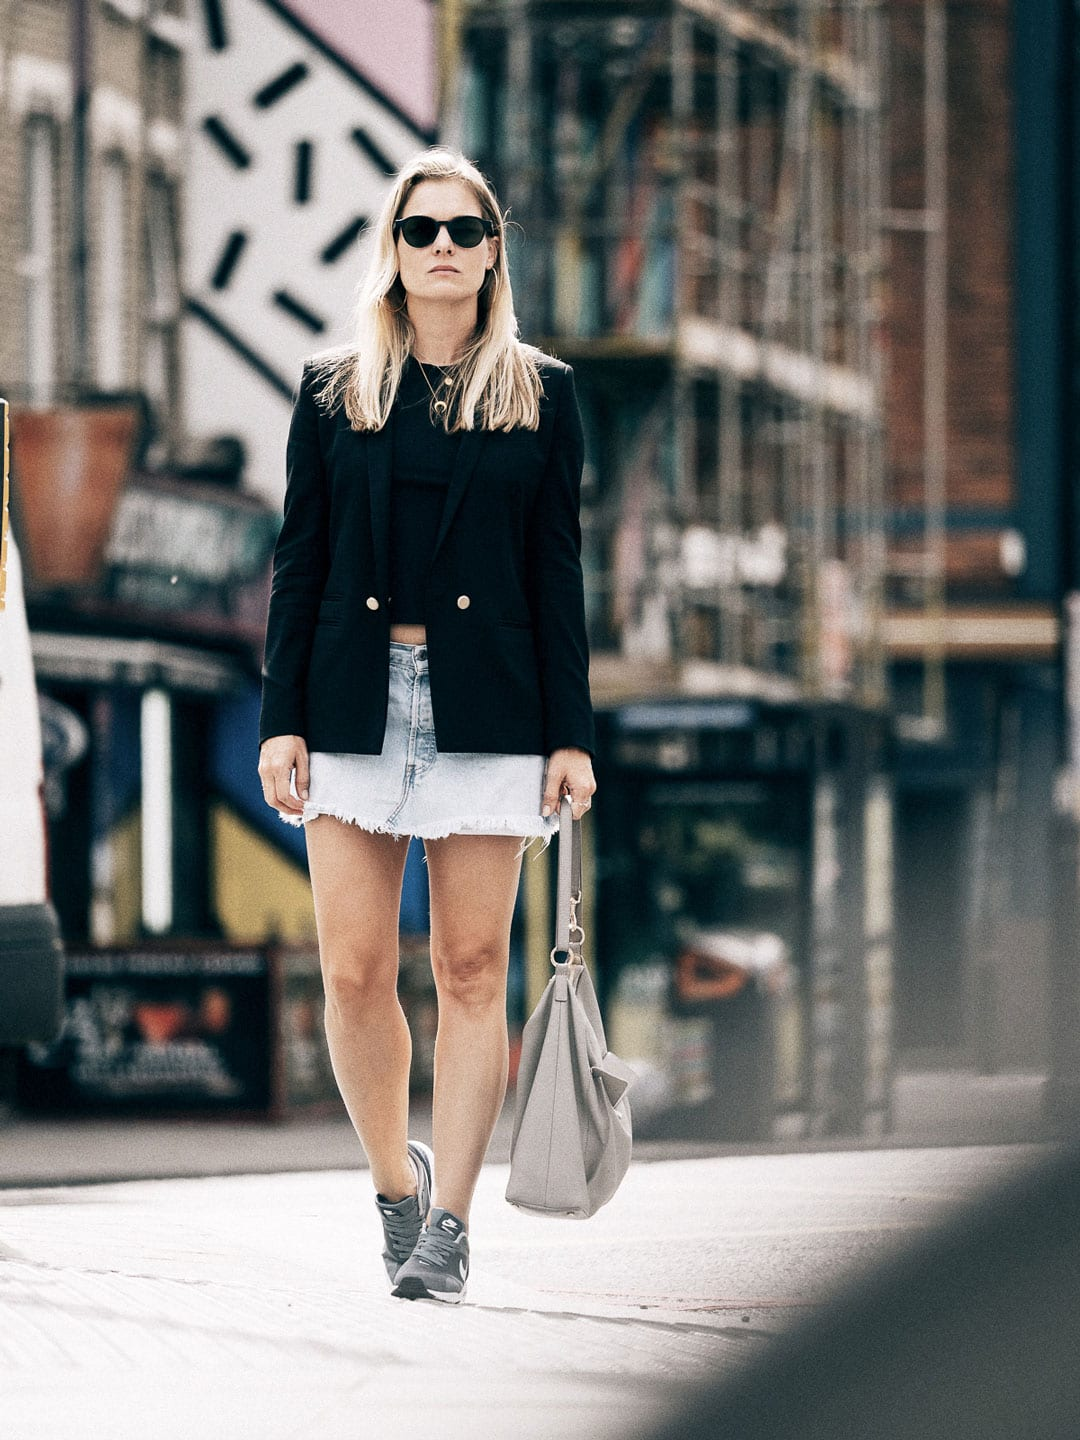 Piece NYC Black Top, Levi's Denim Skirt, The Kooples Black Blazer, Nike Tevas Trainers